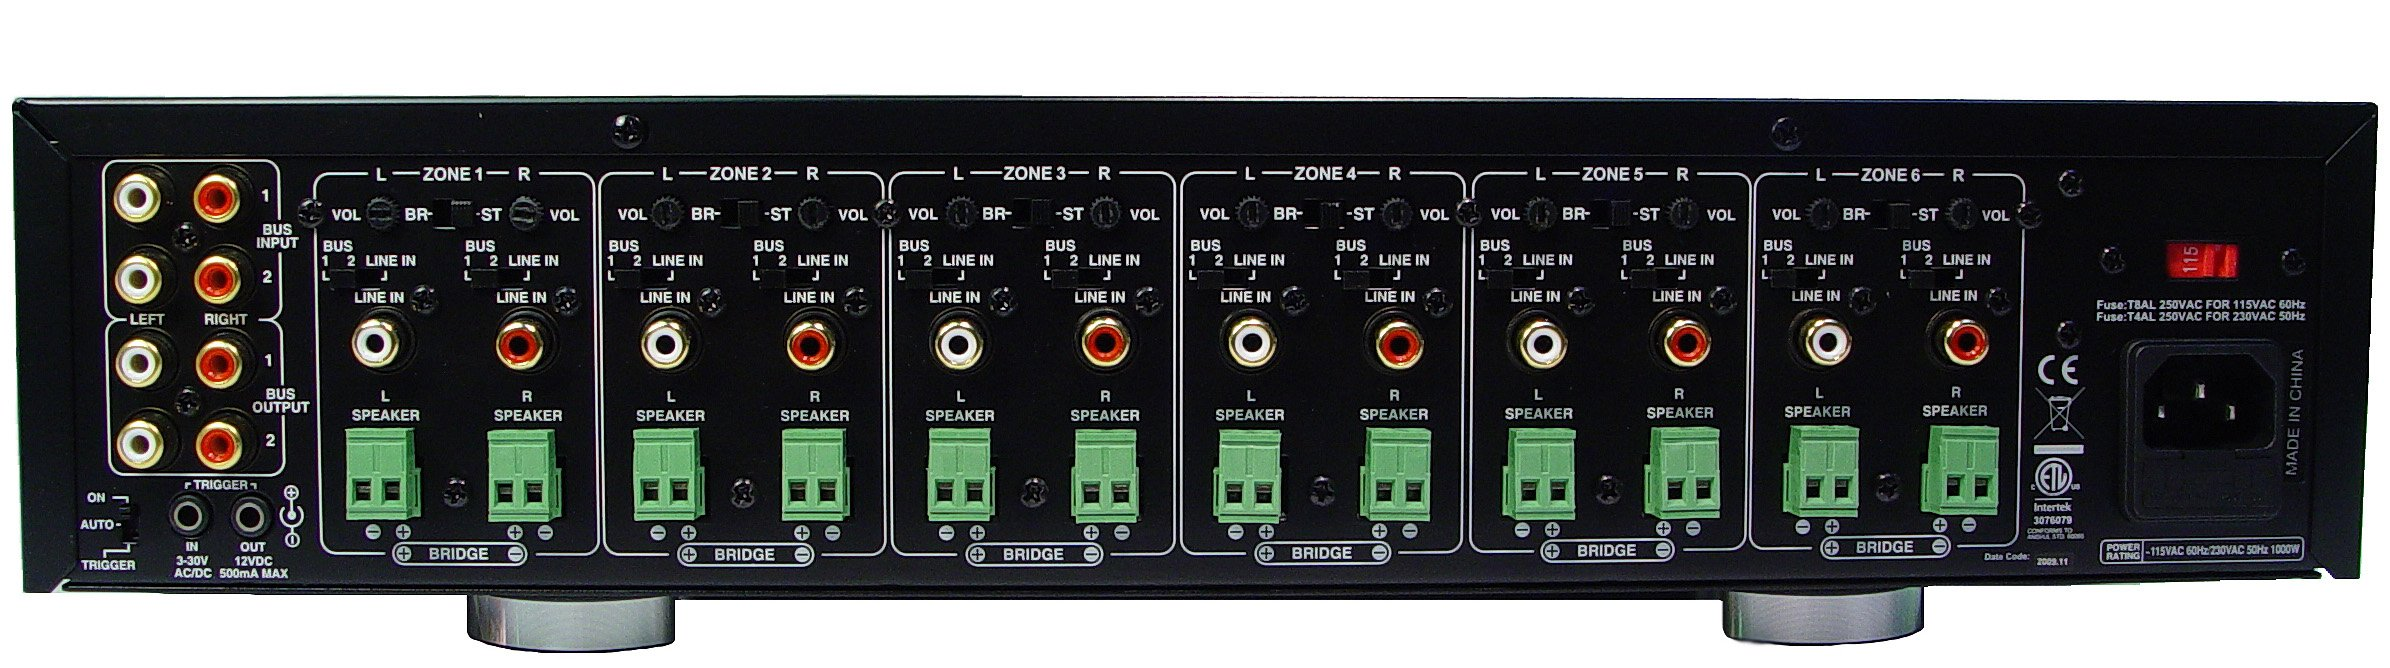 AudioSource AMP 1200 12-Channel Audio Distribution Amplifier (Black) by Audiosource